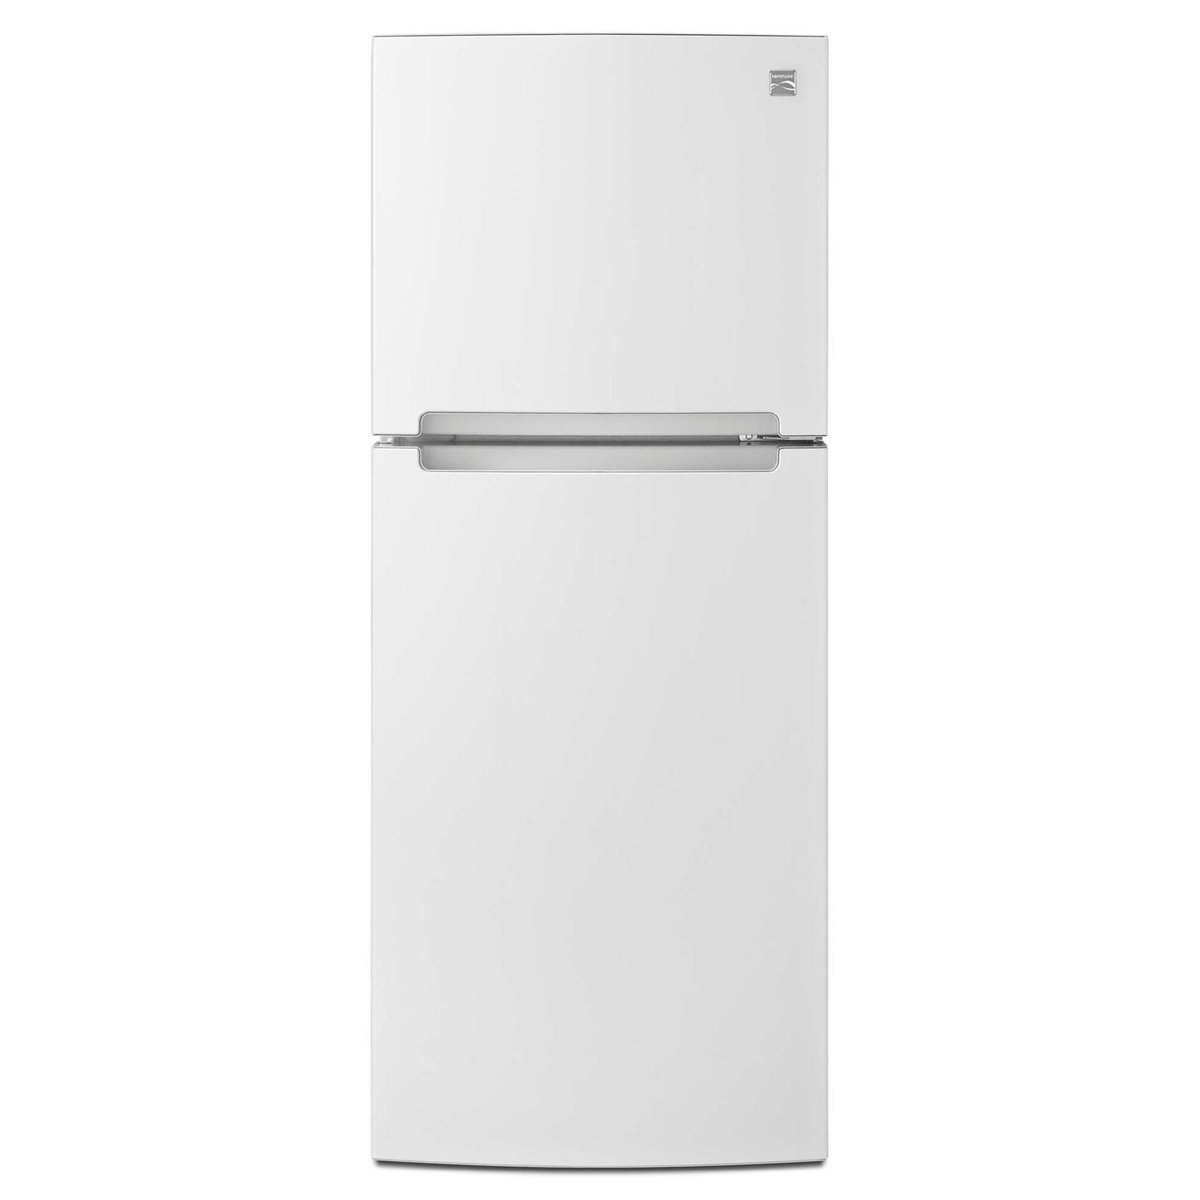 Kenmore 76392 10.7 cu. ft. Top-Freezer Refrigerator with Humidity-Controlled Crisper, White